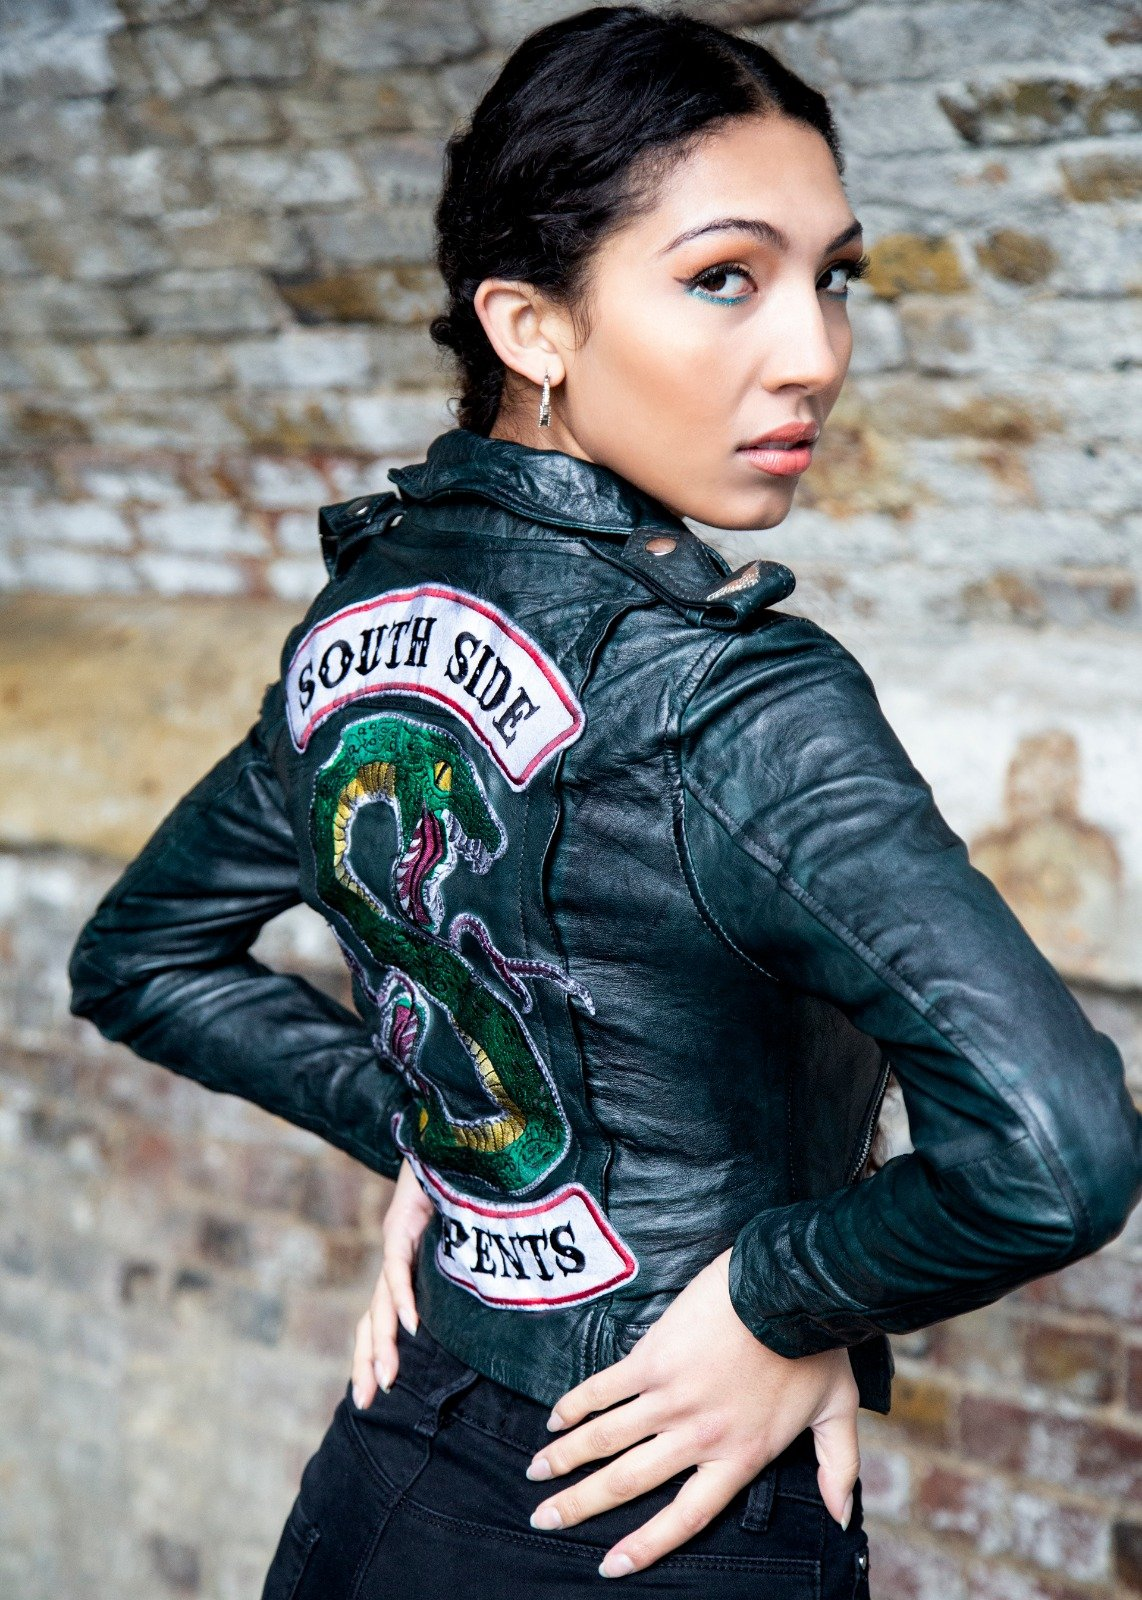 Womens Black Southside Serpents Riverdale Jacket Hot Topic